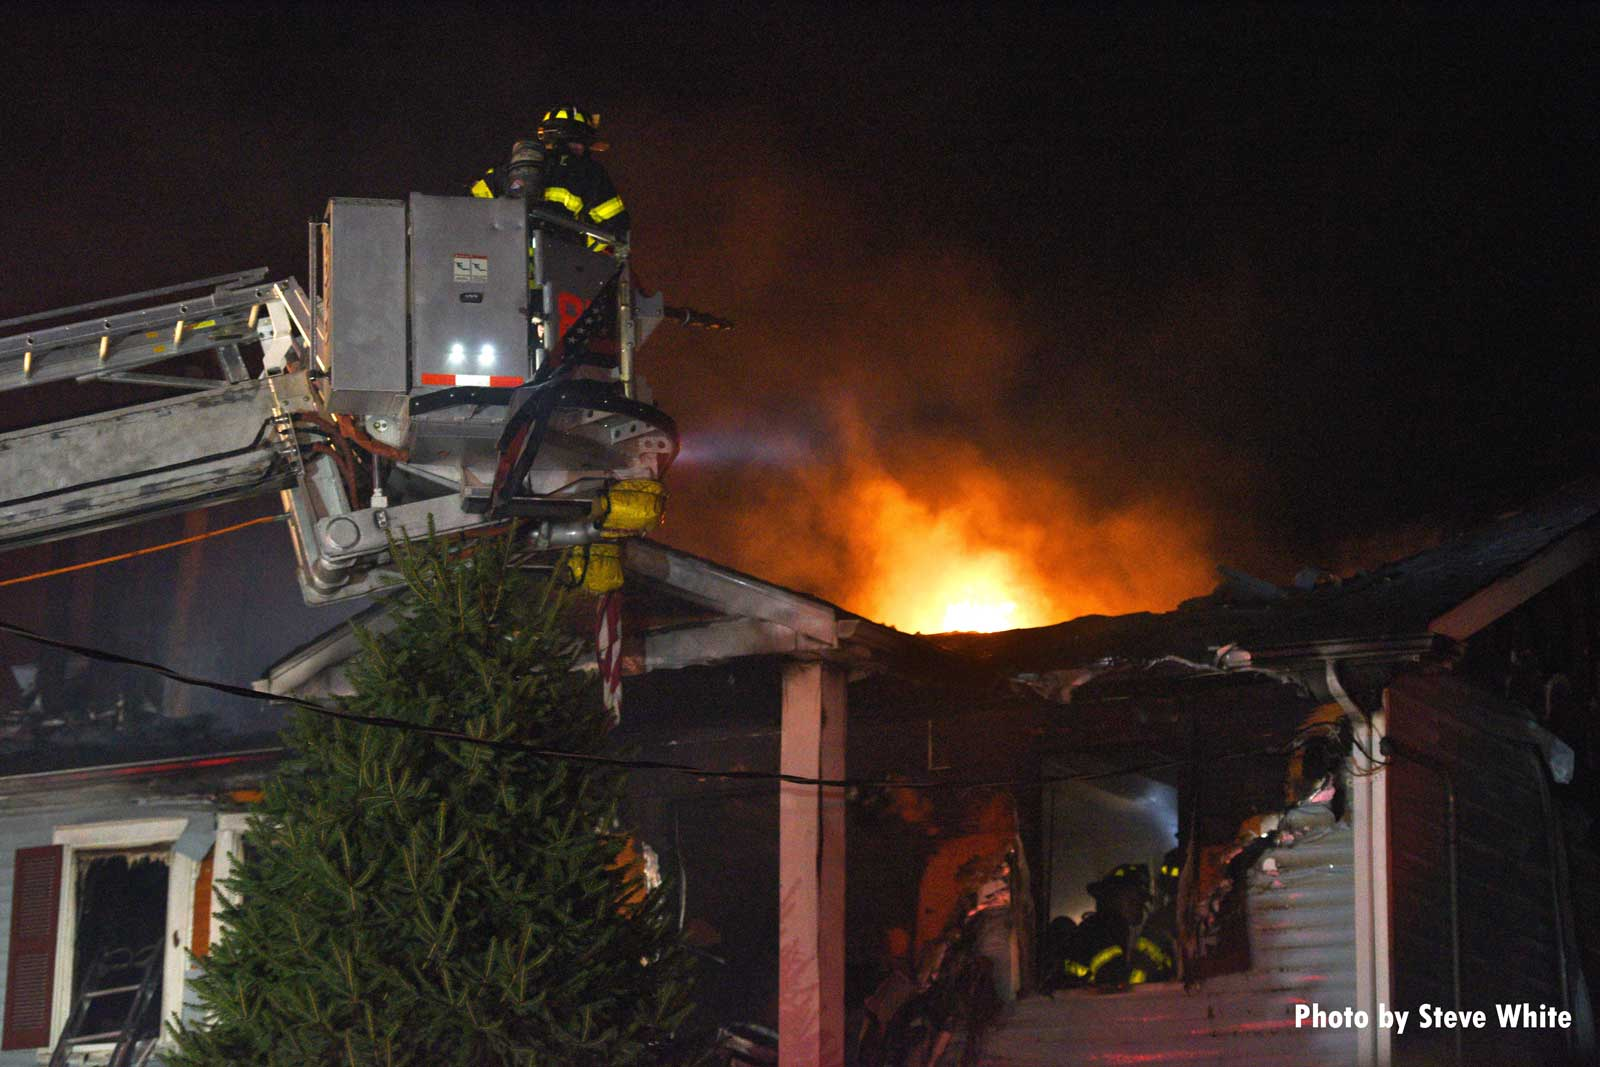 FDNY Tower Ladder with fire showing from roof of dwelling